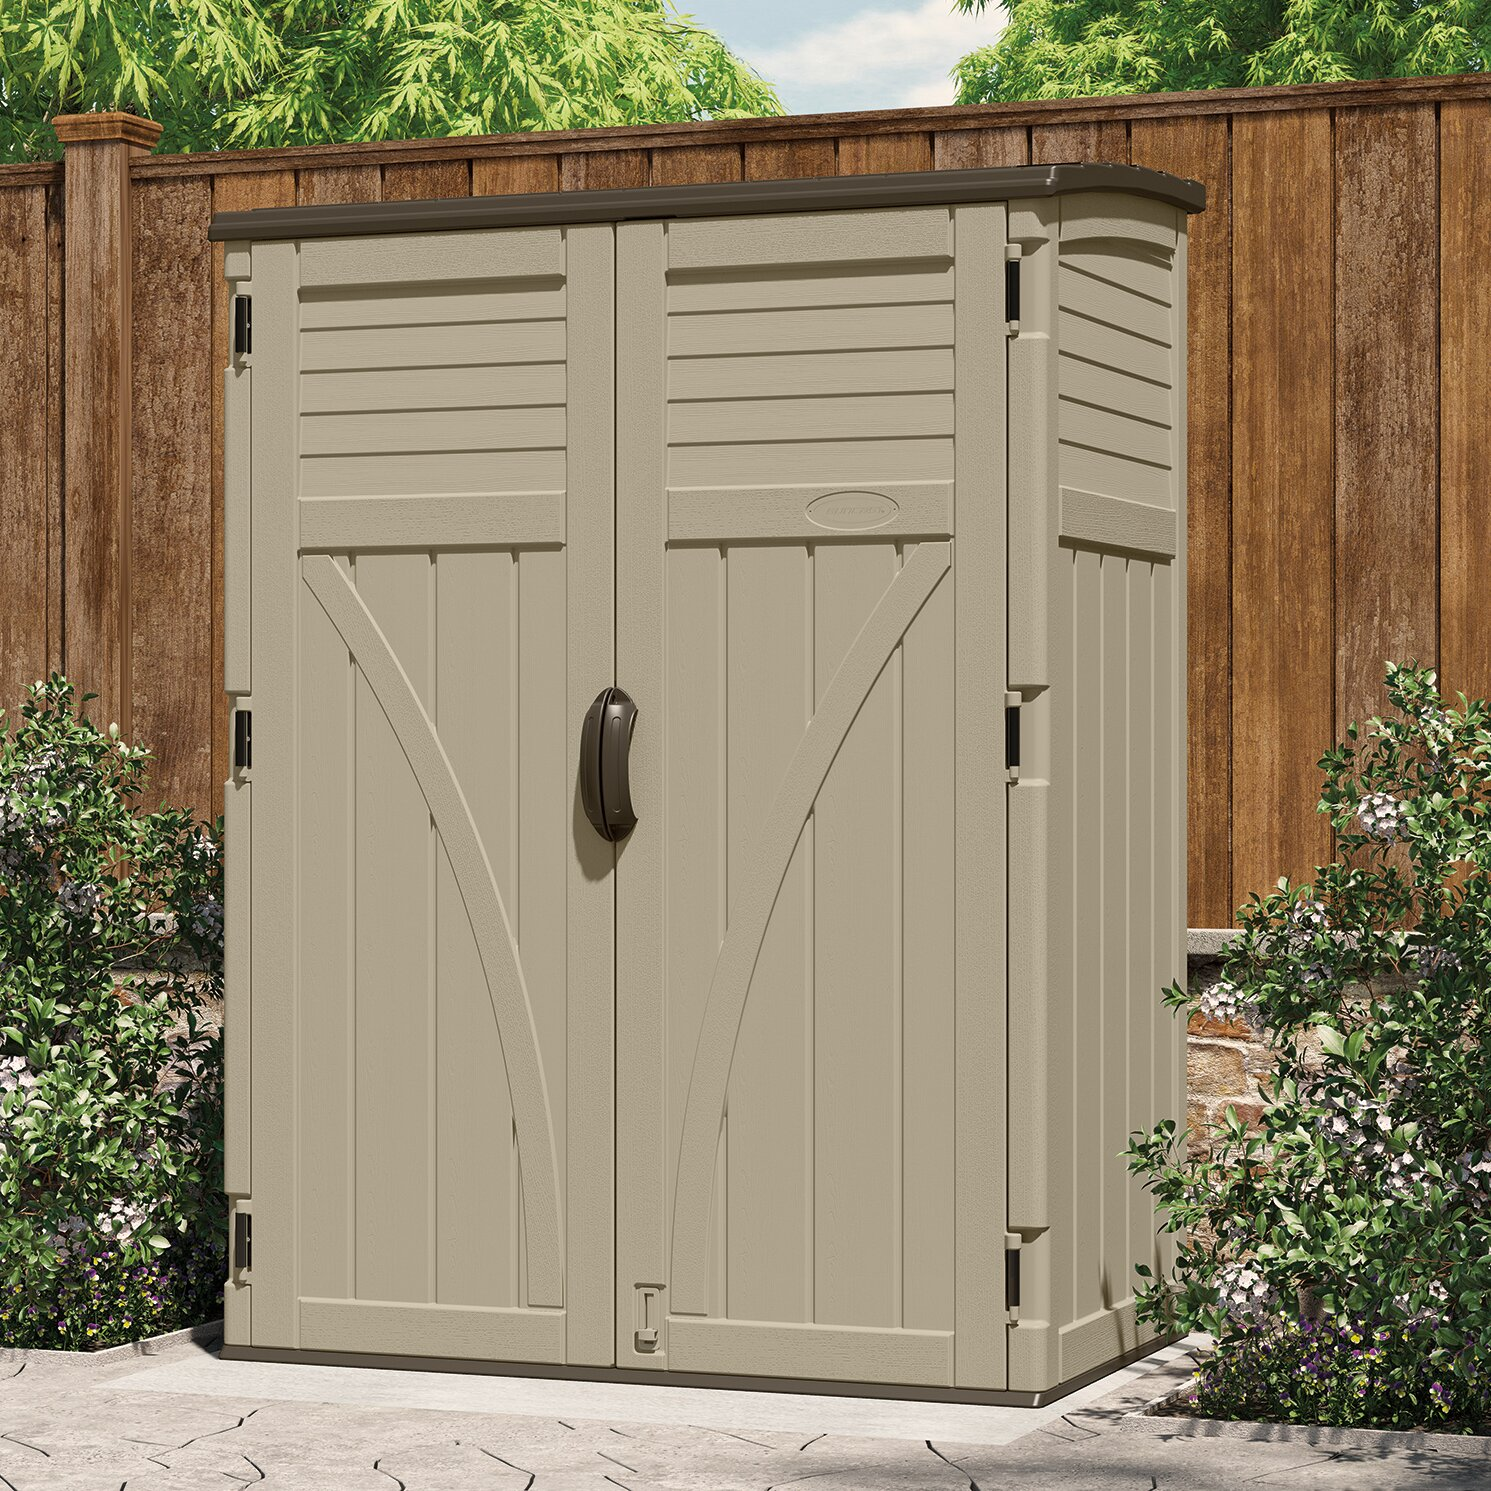 Suncast 4 4 ft w x 2 7 ft d plastic storage shed for Garden shed 7 x 3